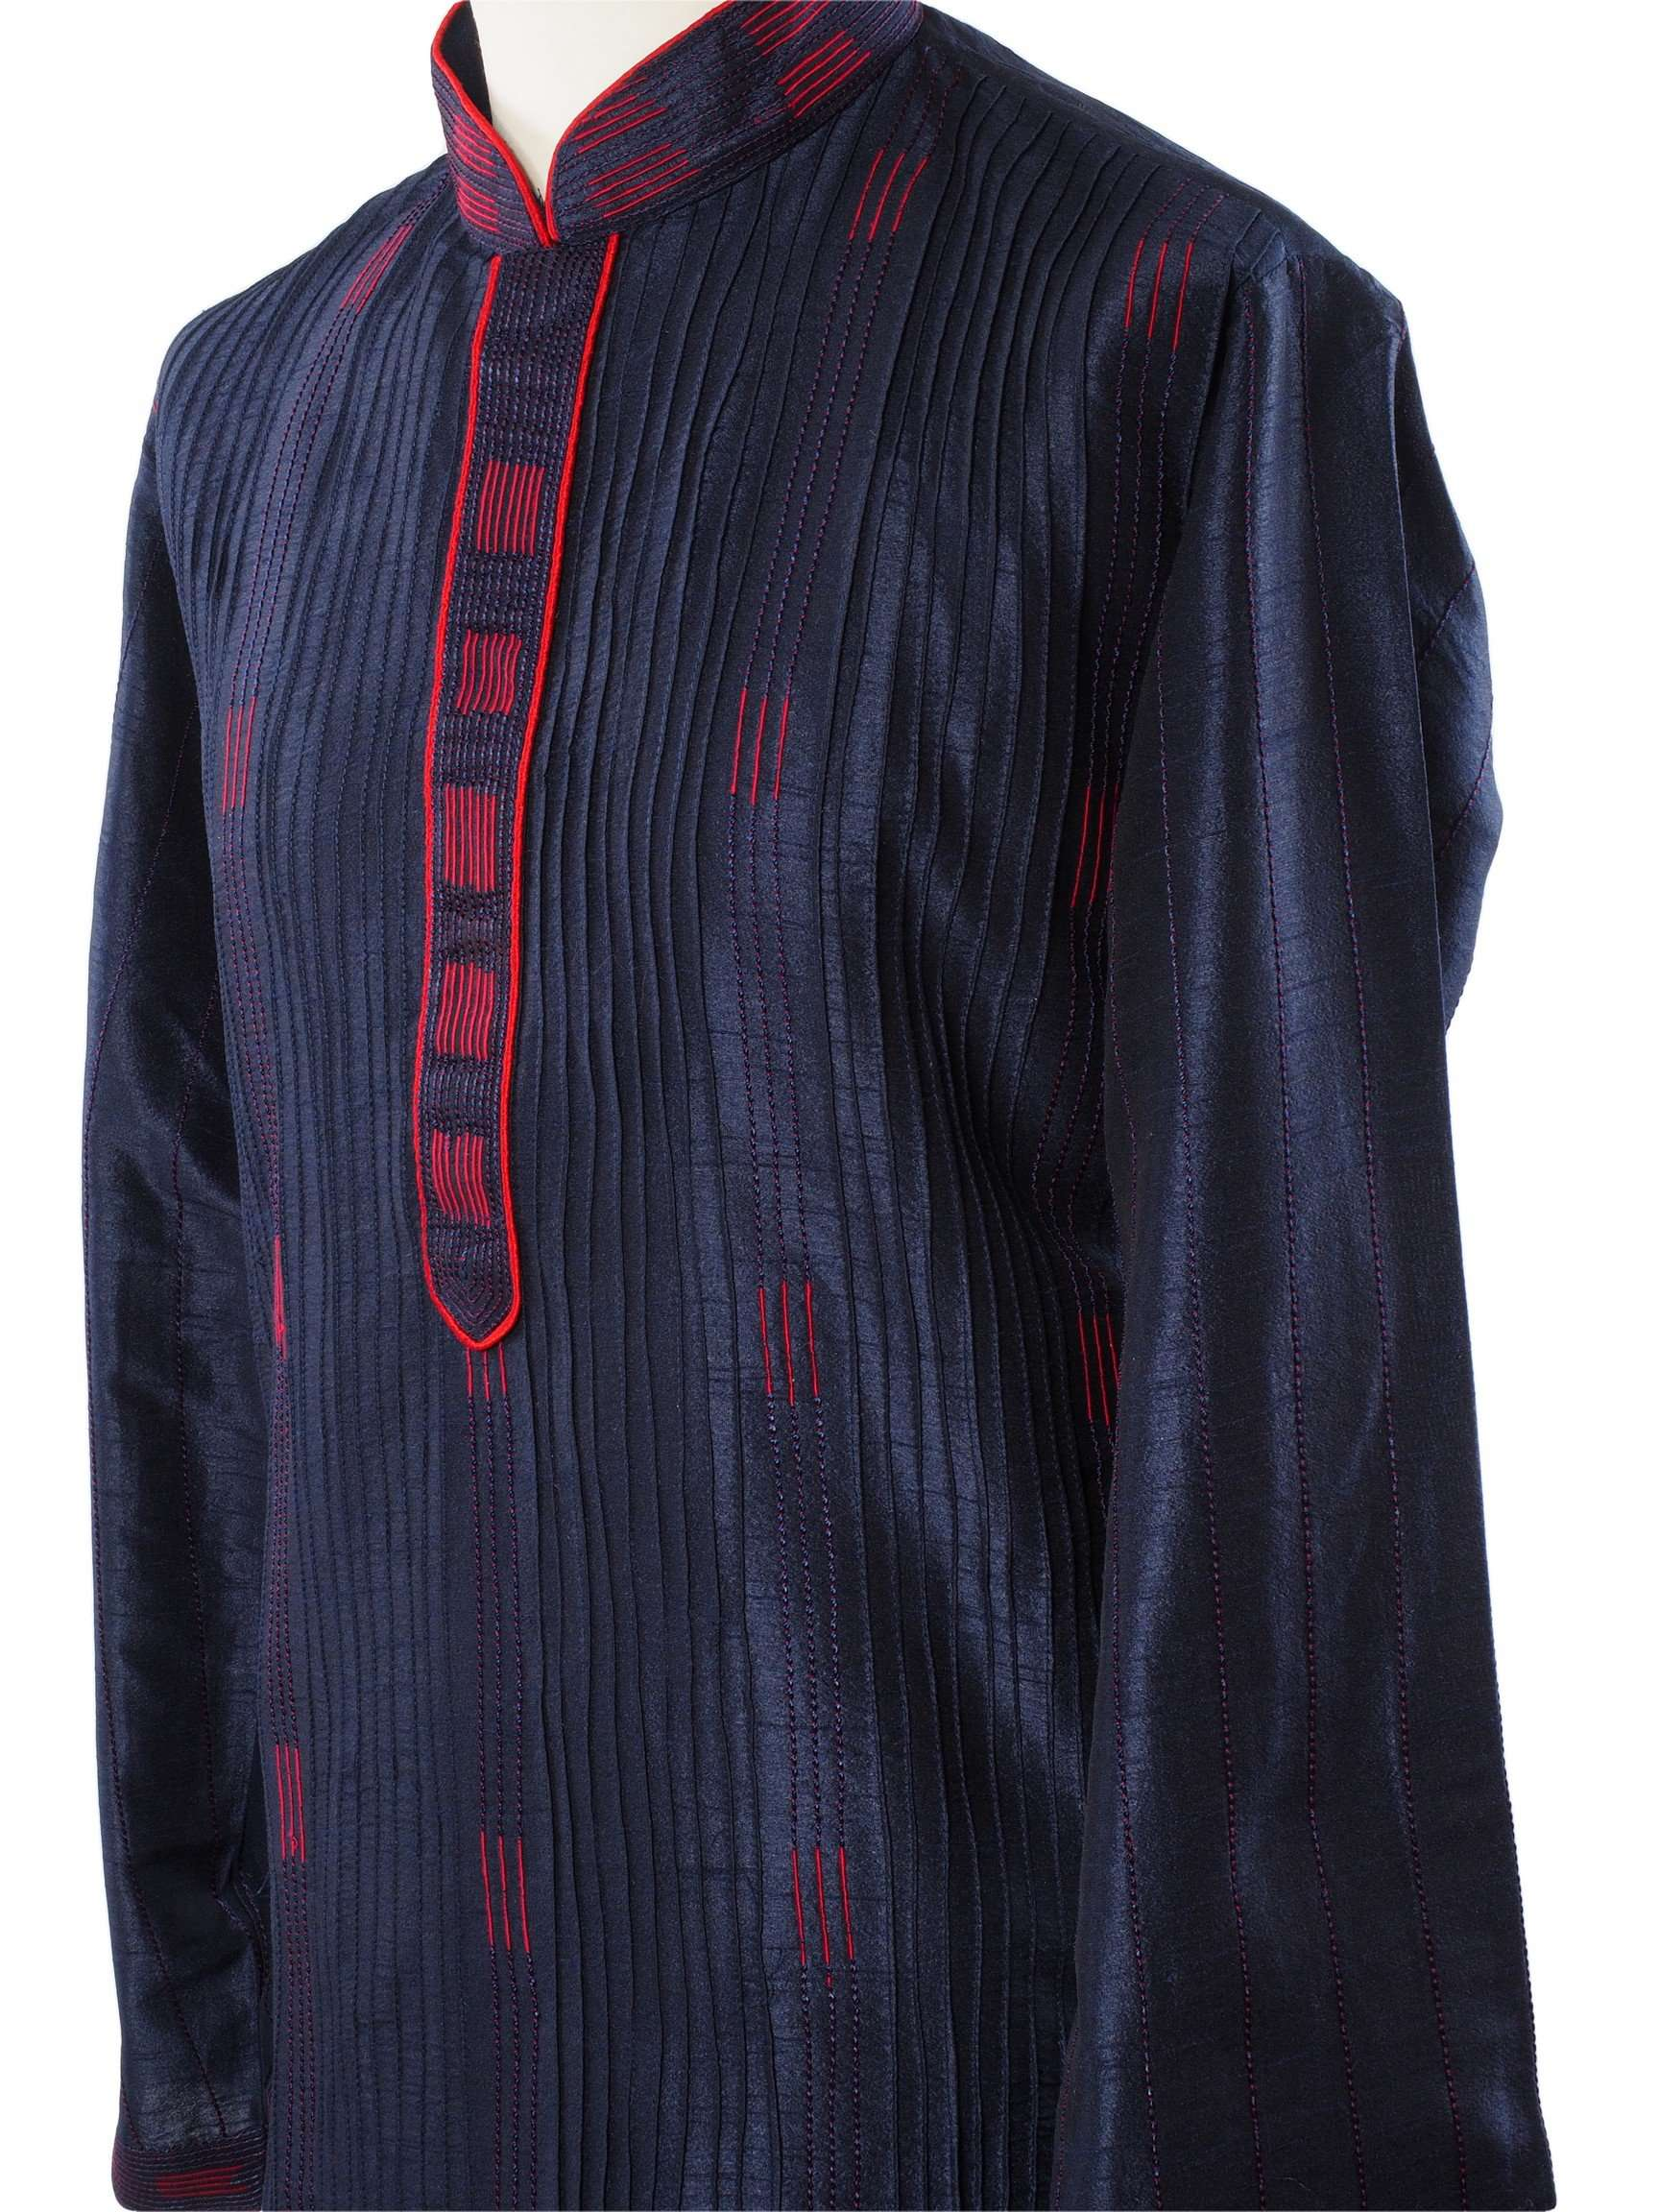 Mens Kurta set in Navy - Bollywood, Weddings, Fancy Dress - SNC588VT-NAV - Prachy Creations